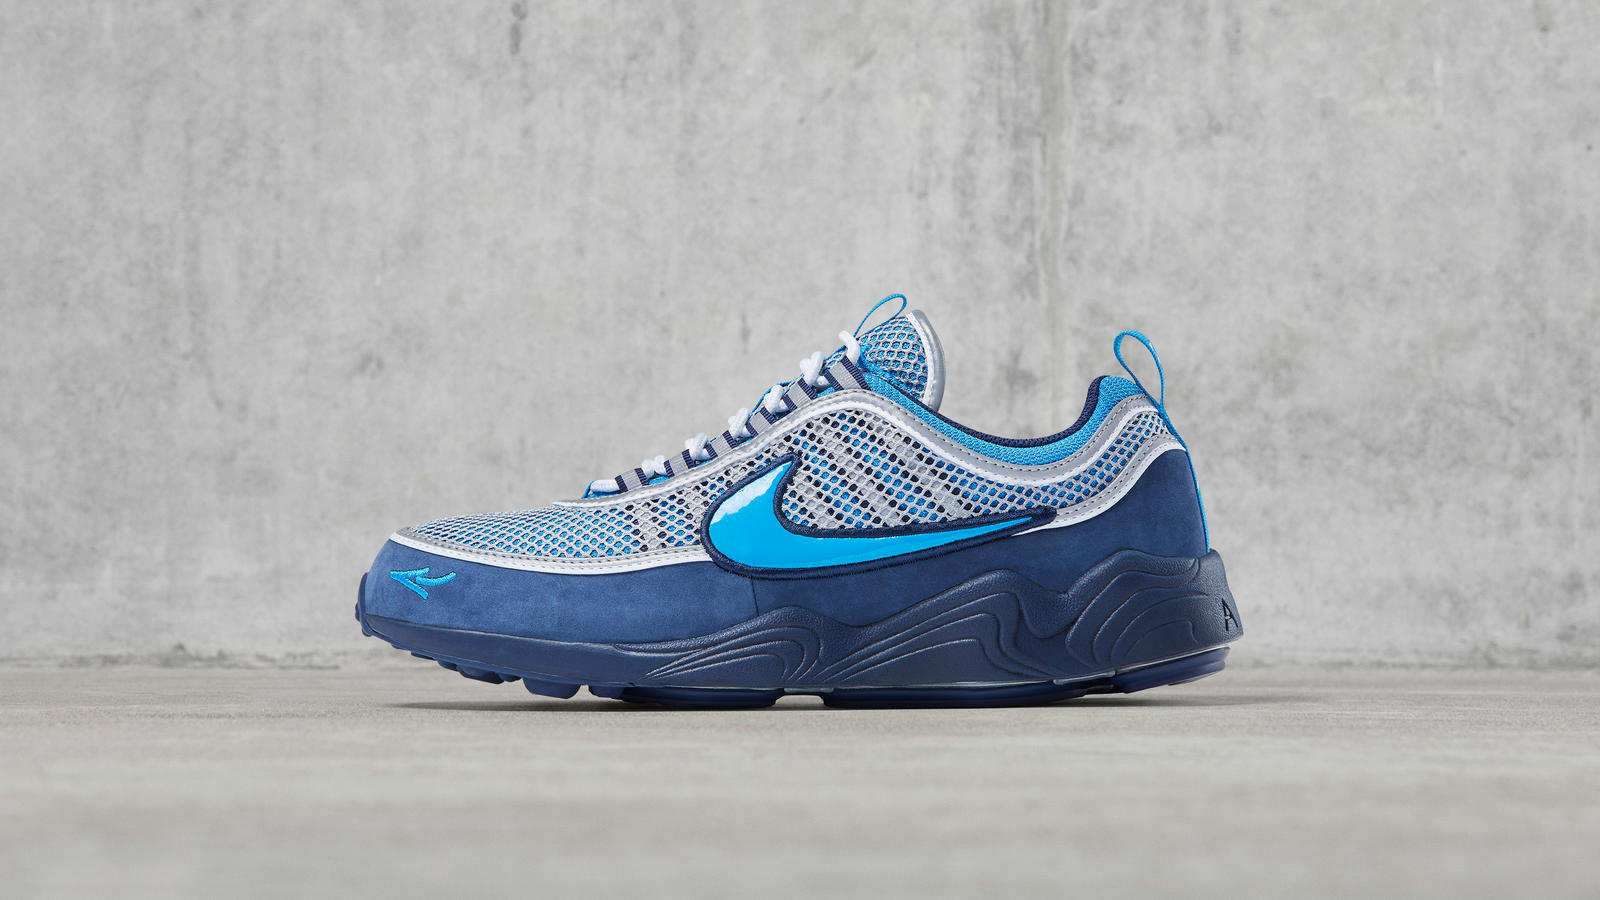 Nike Air Zoom Spiridon  16 x STASH - Nike News 88834d336